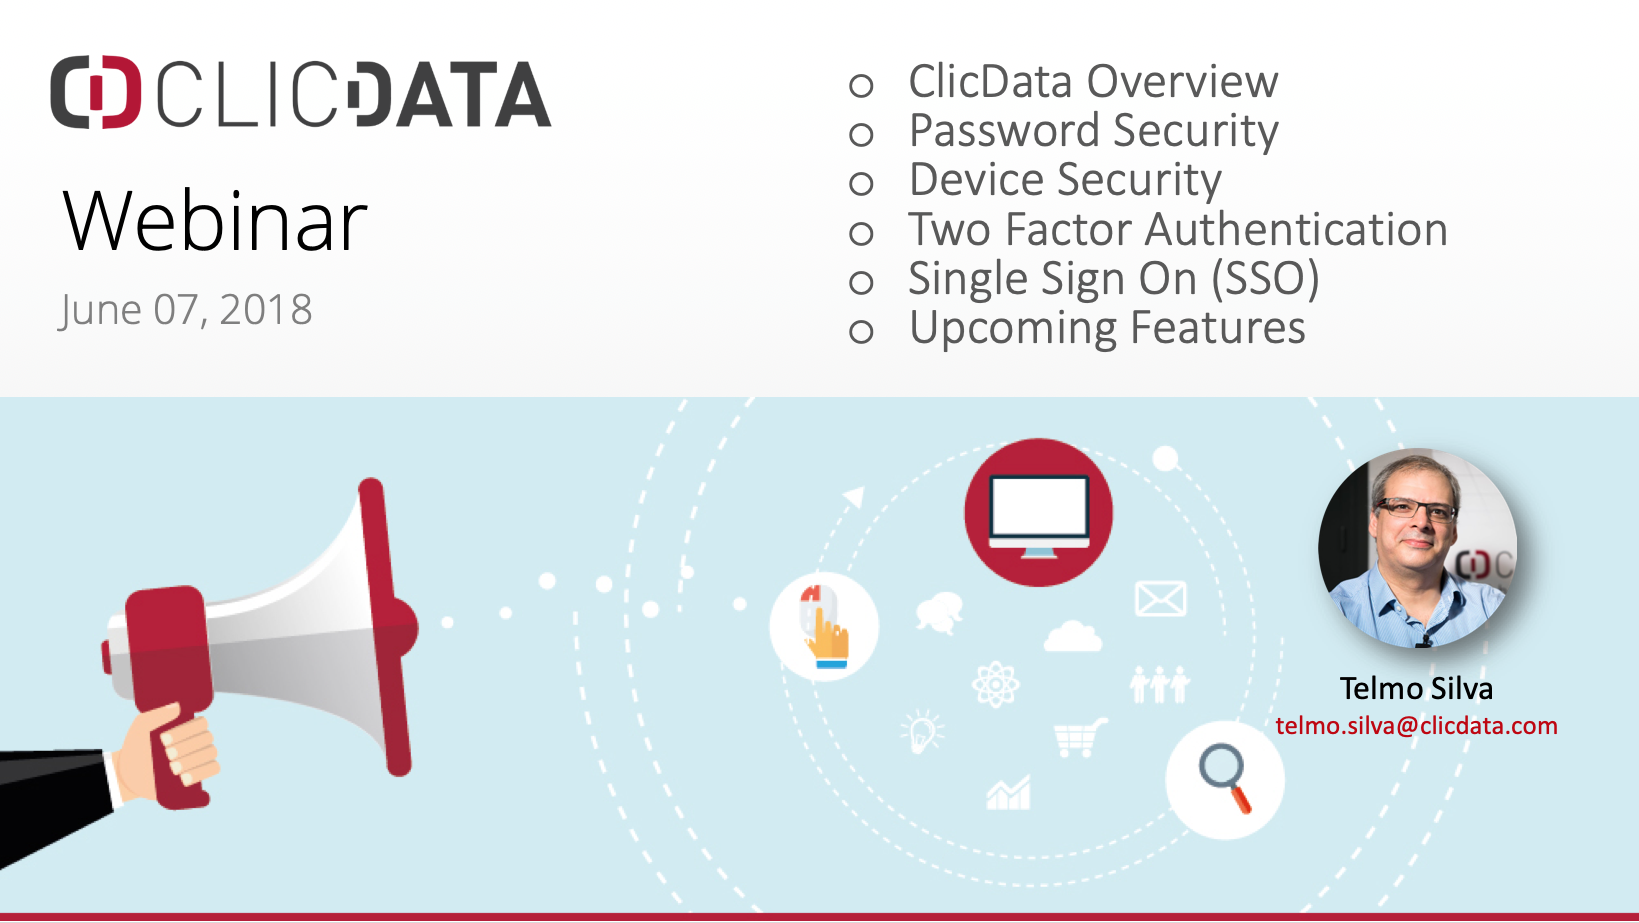 clicdata_support_webinars-advanced-security-features